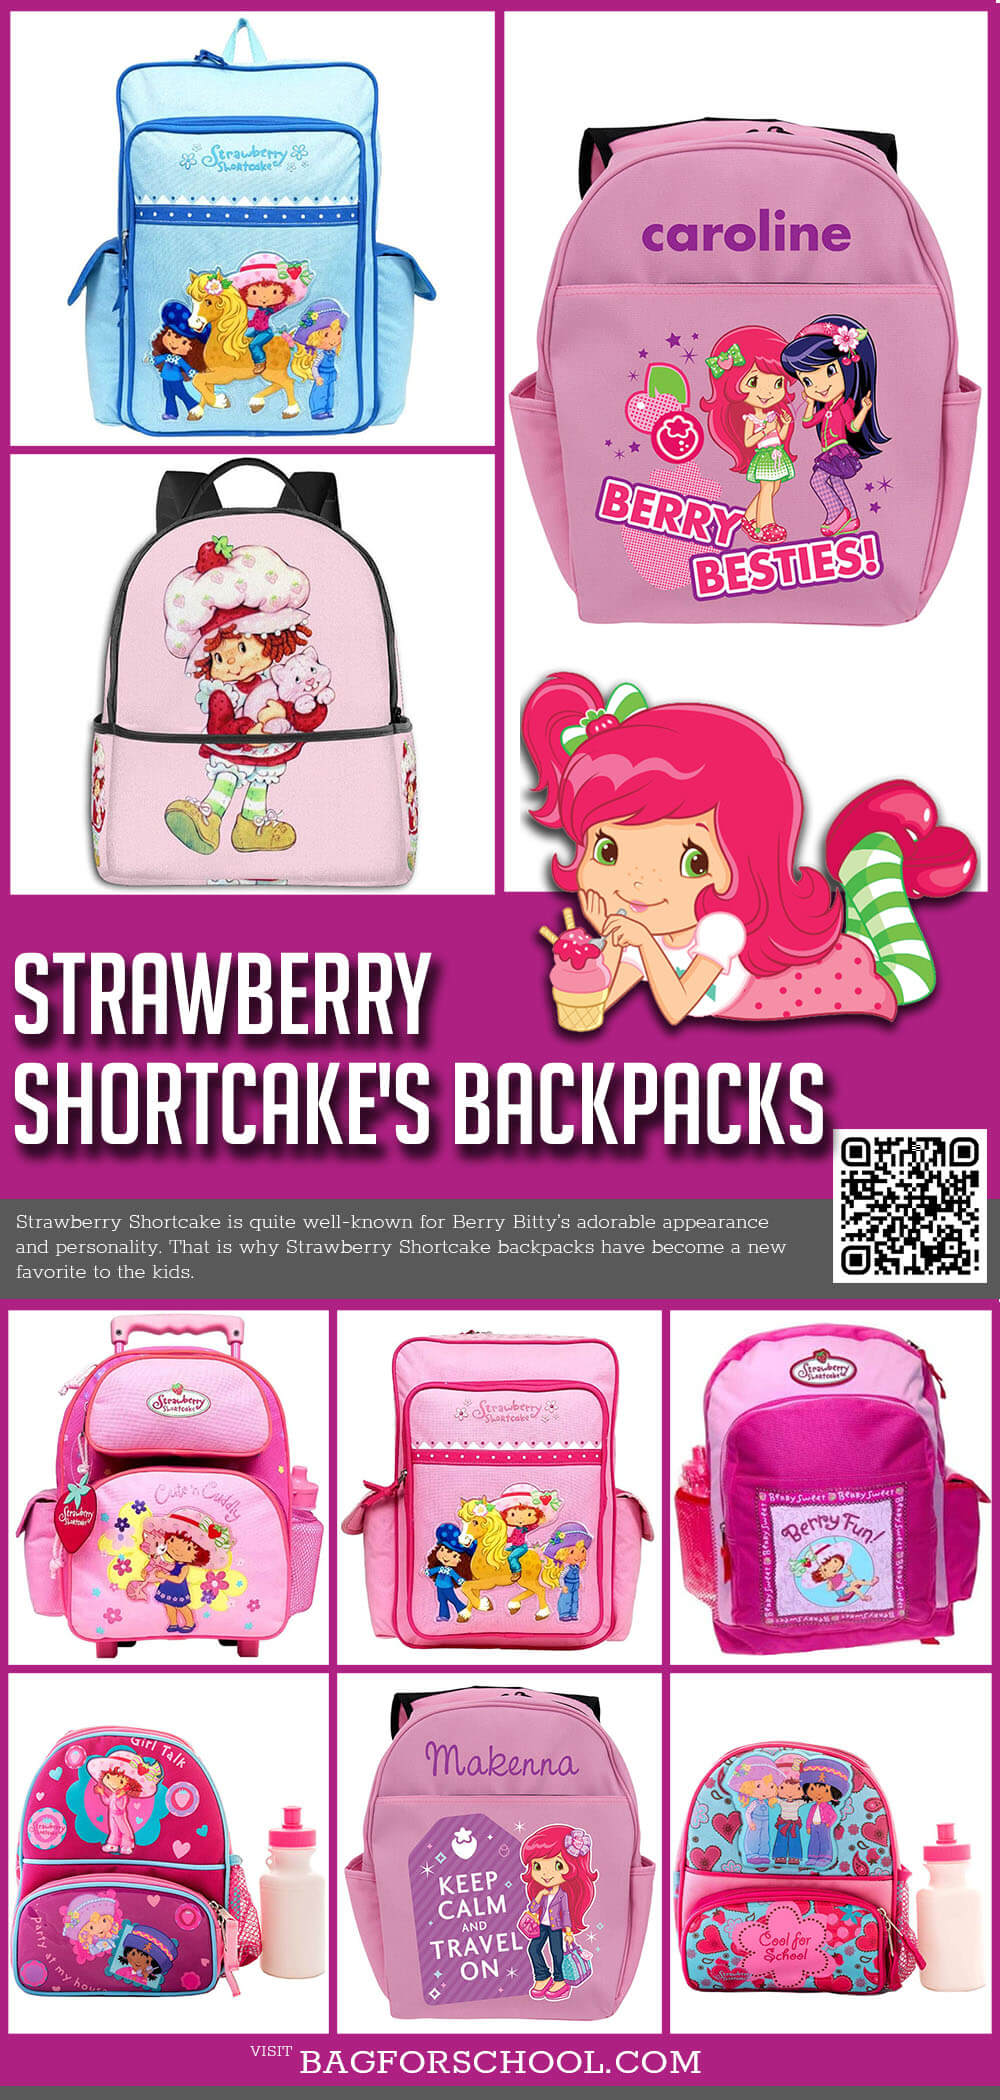 Strawberry Shortcakes Backpacks